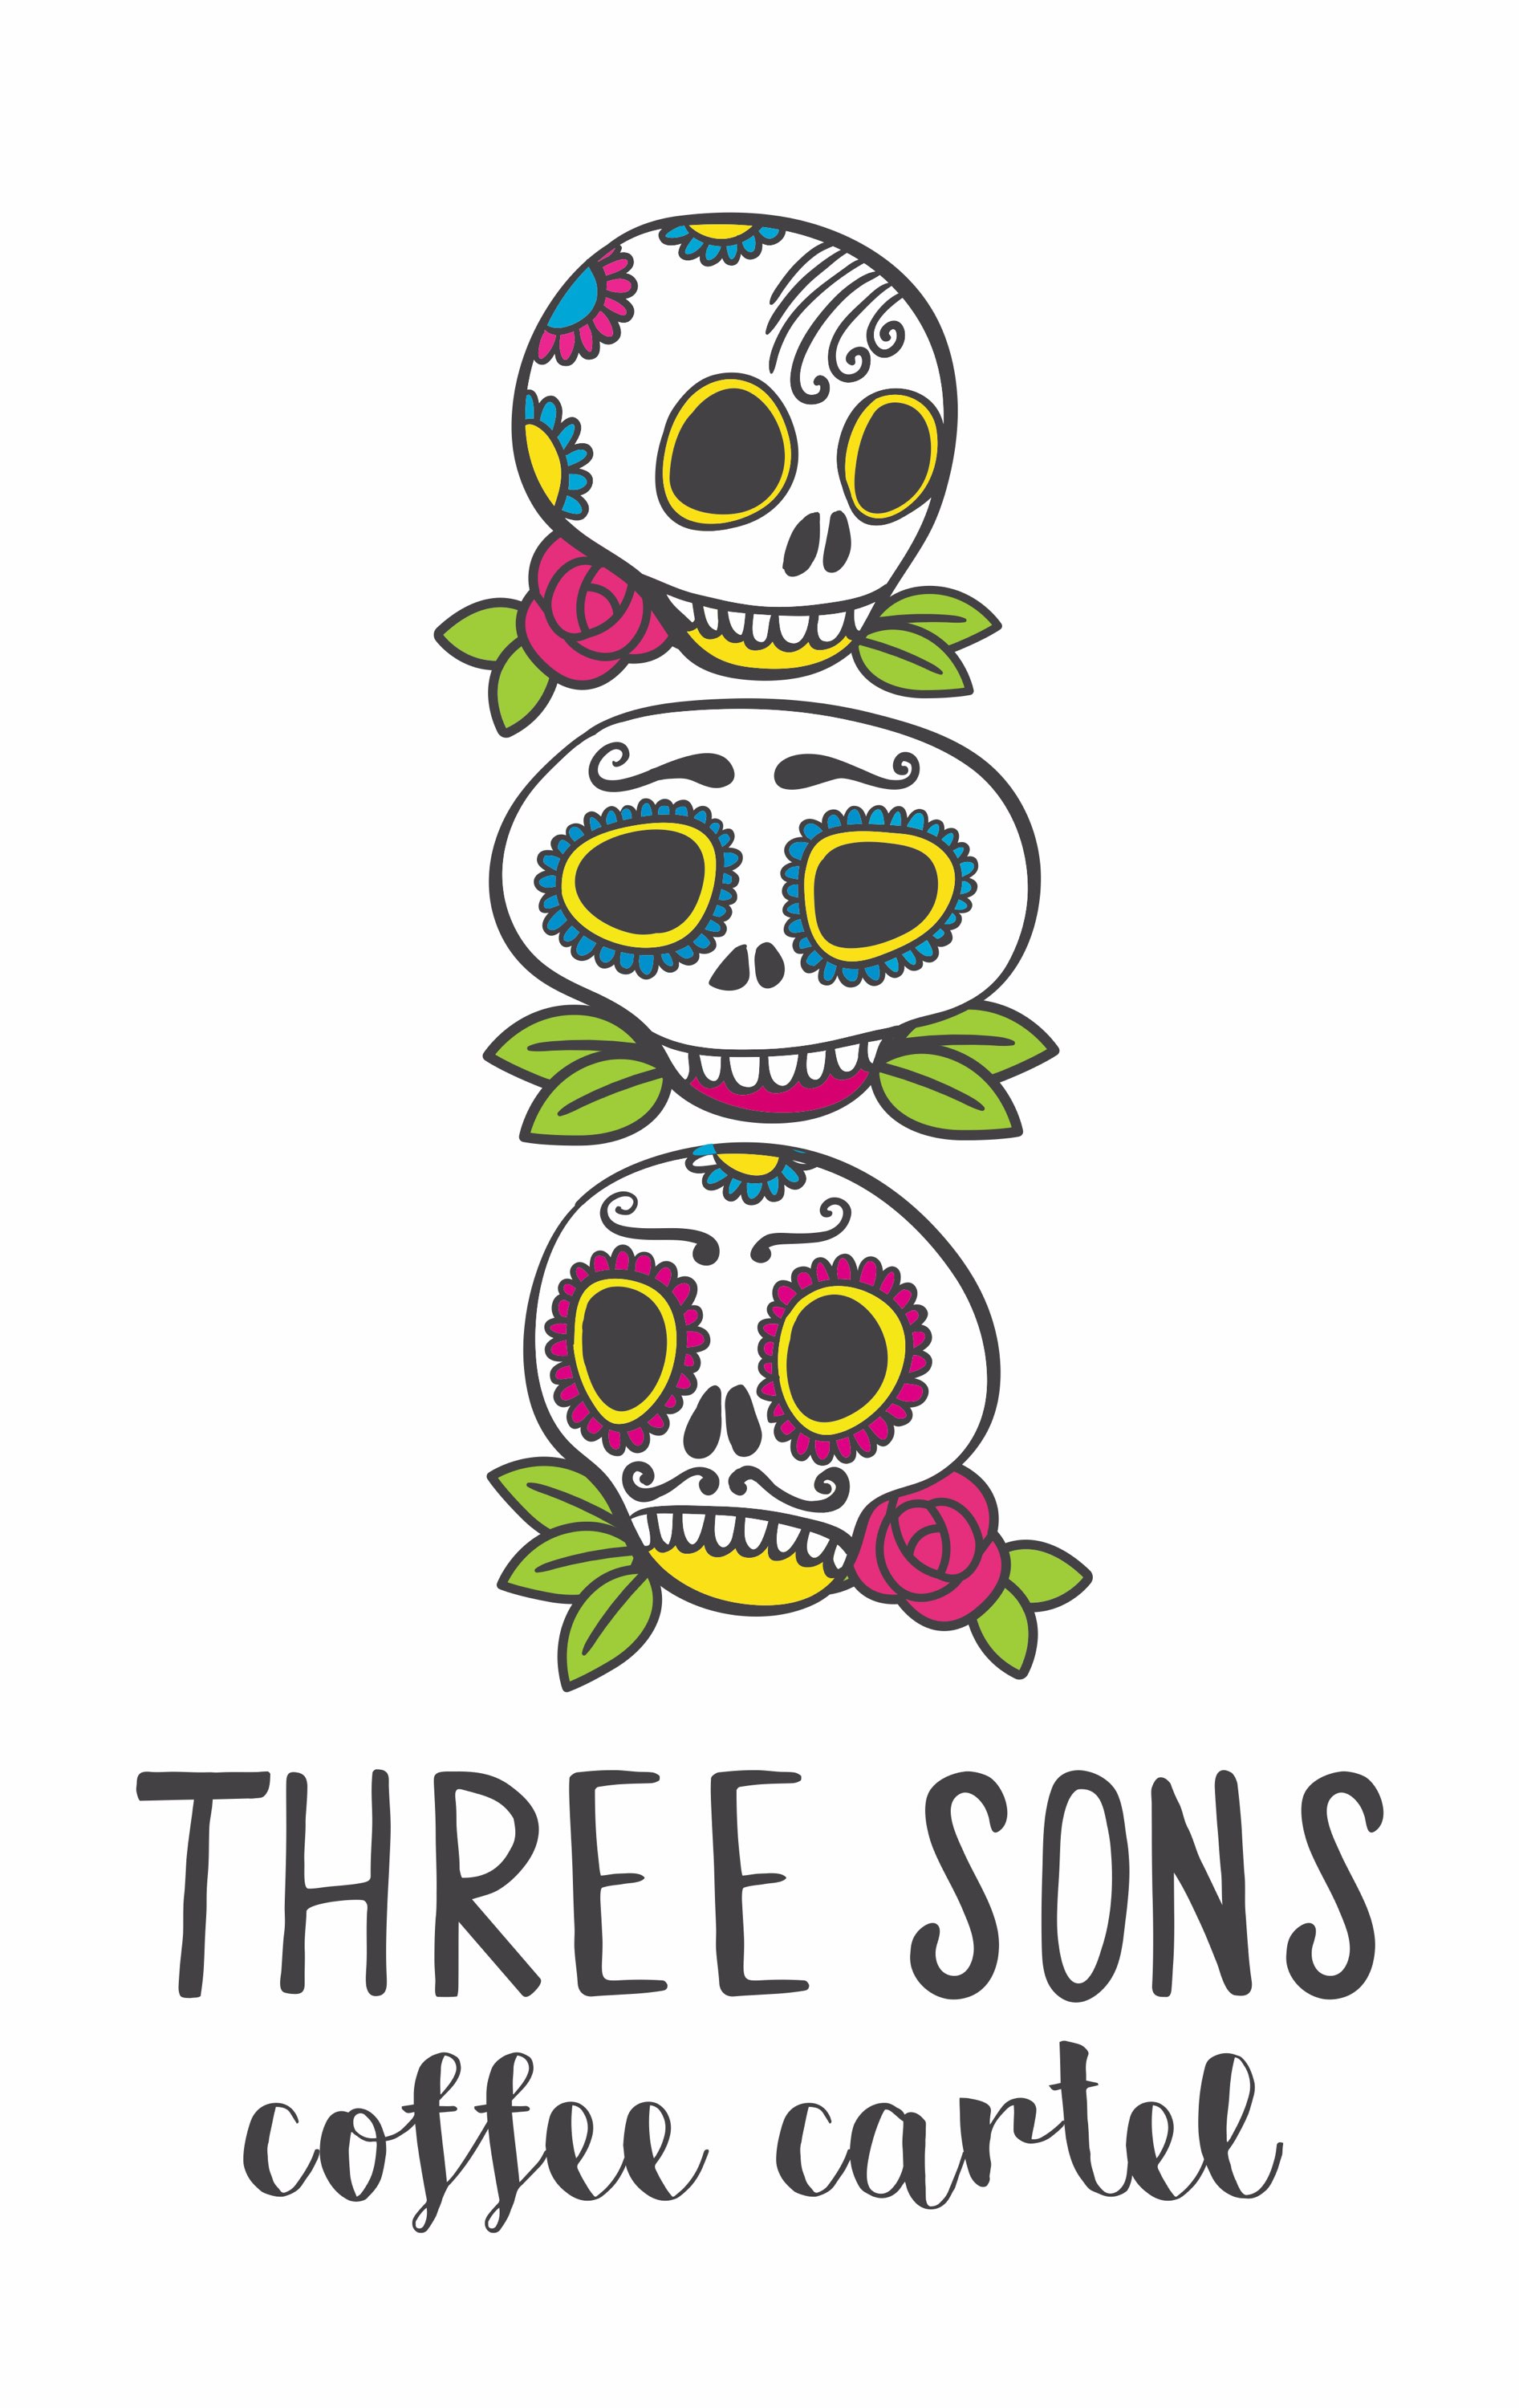 Three Sons Coffee Cartel